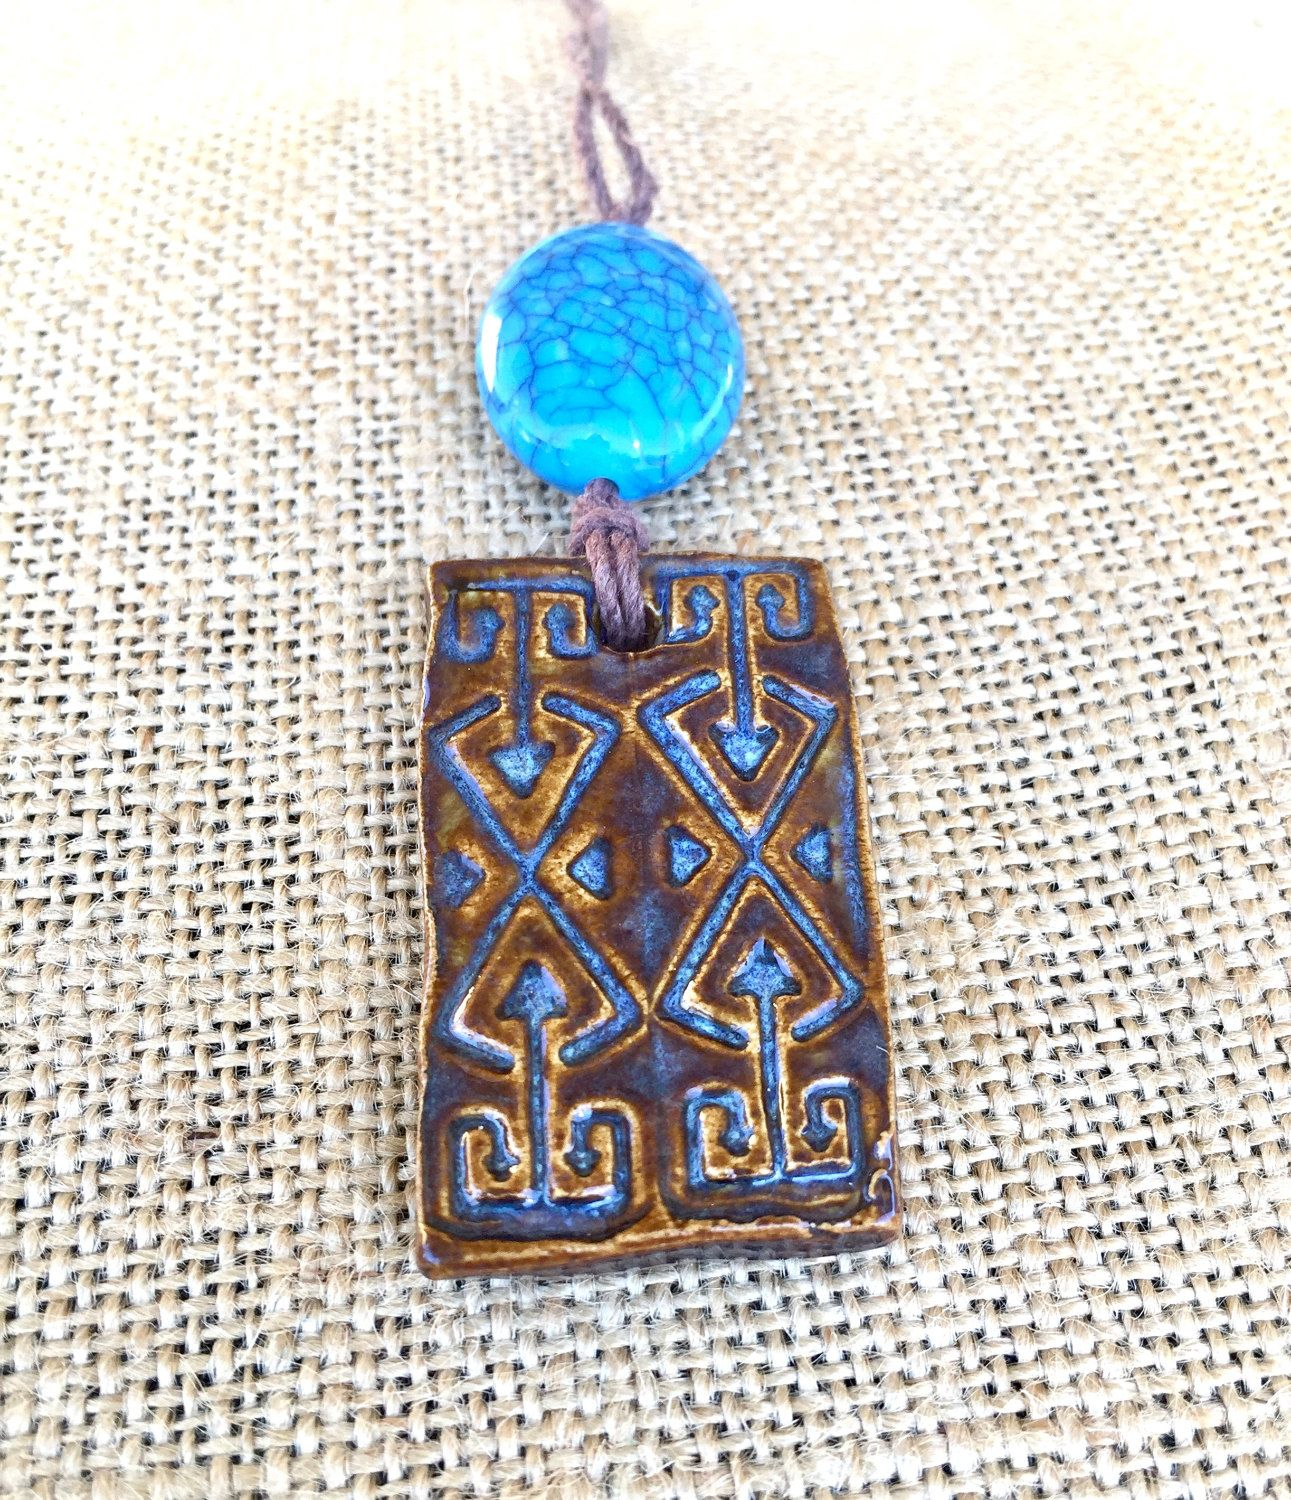 Handmade Ceramic Pendant Necklace with Tribal Pattern, Tribal Necklace, Boho Style, Boho Necklace, Handmade Necklace, Tribal Jewelry by Ifwewerebirdsart on Etsy